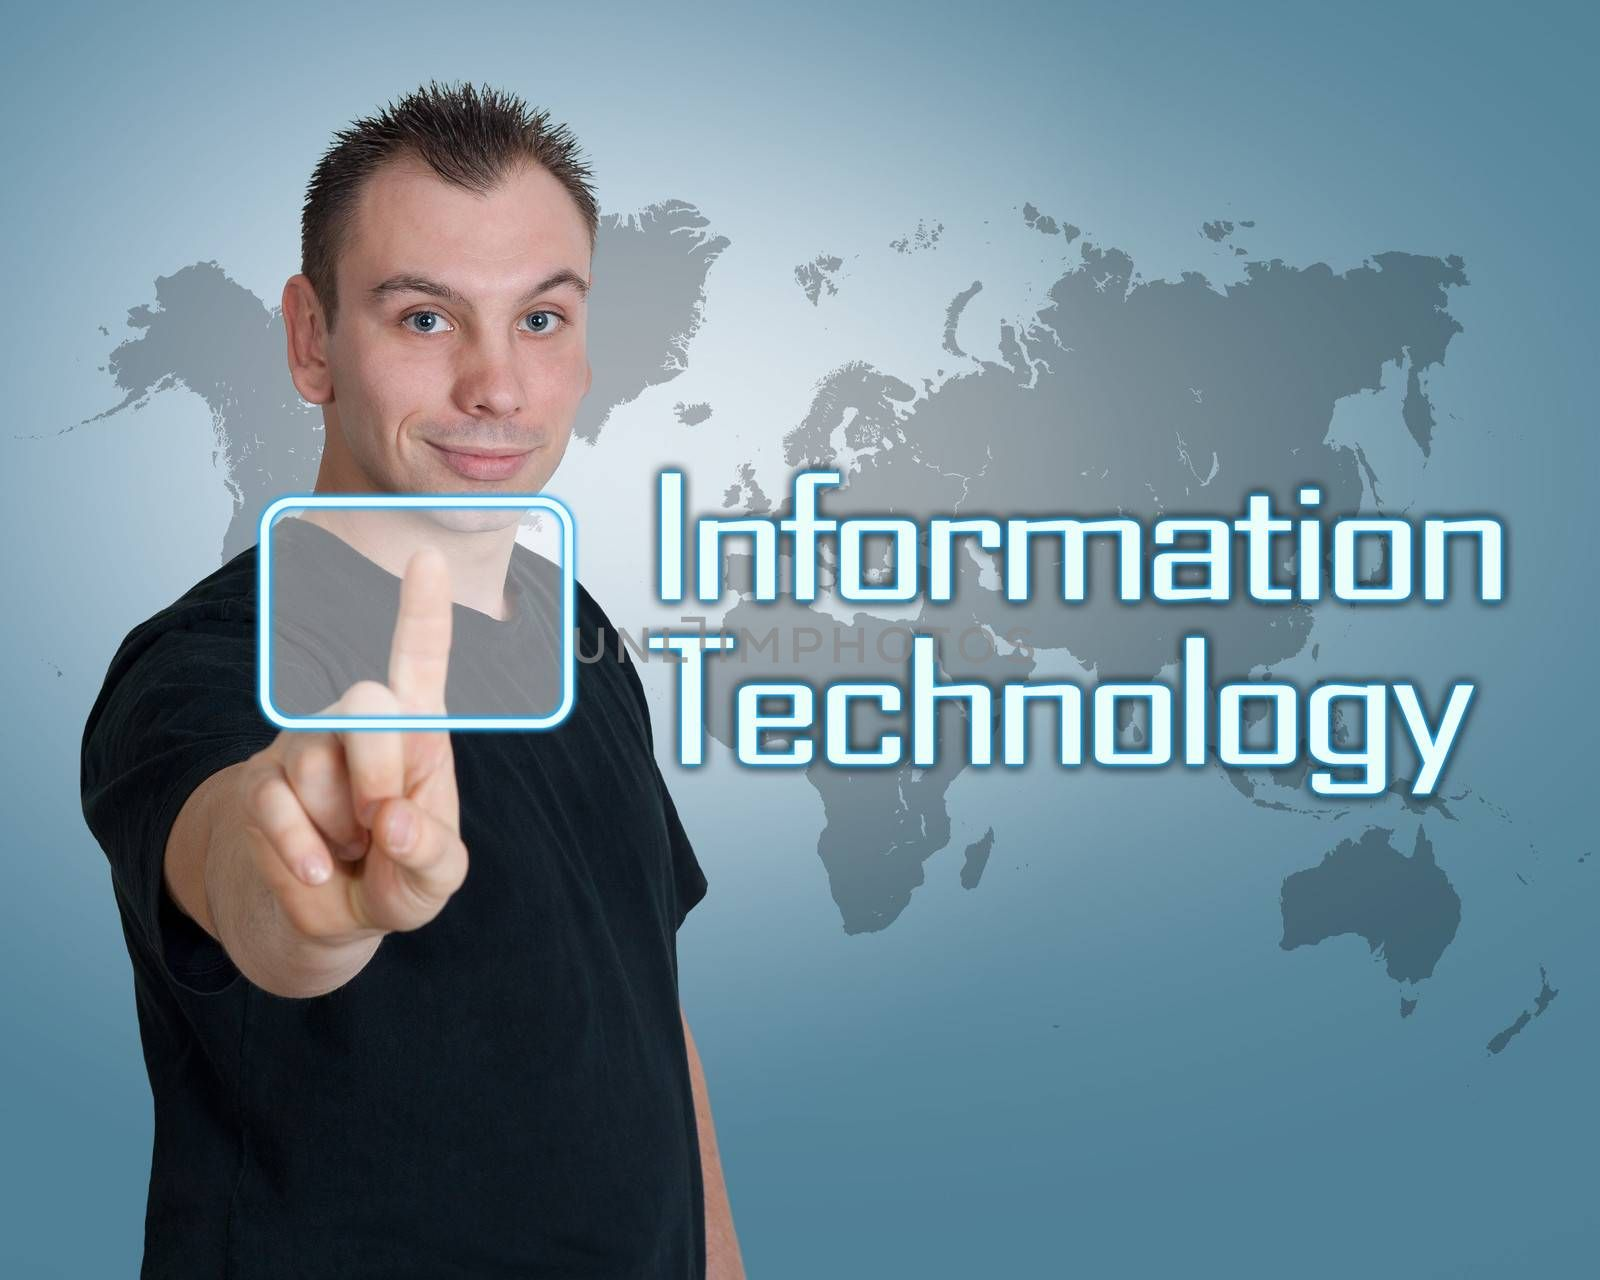 Young man press digital Information Technology button on interface in front of him